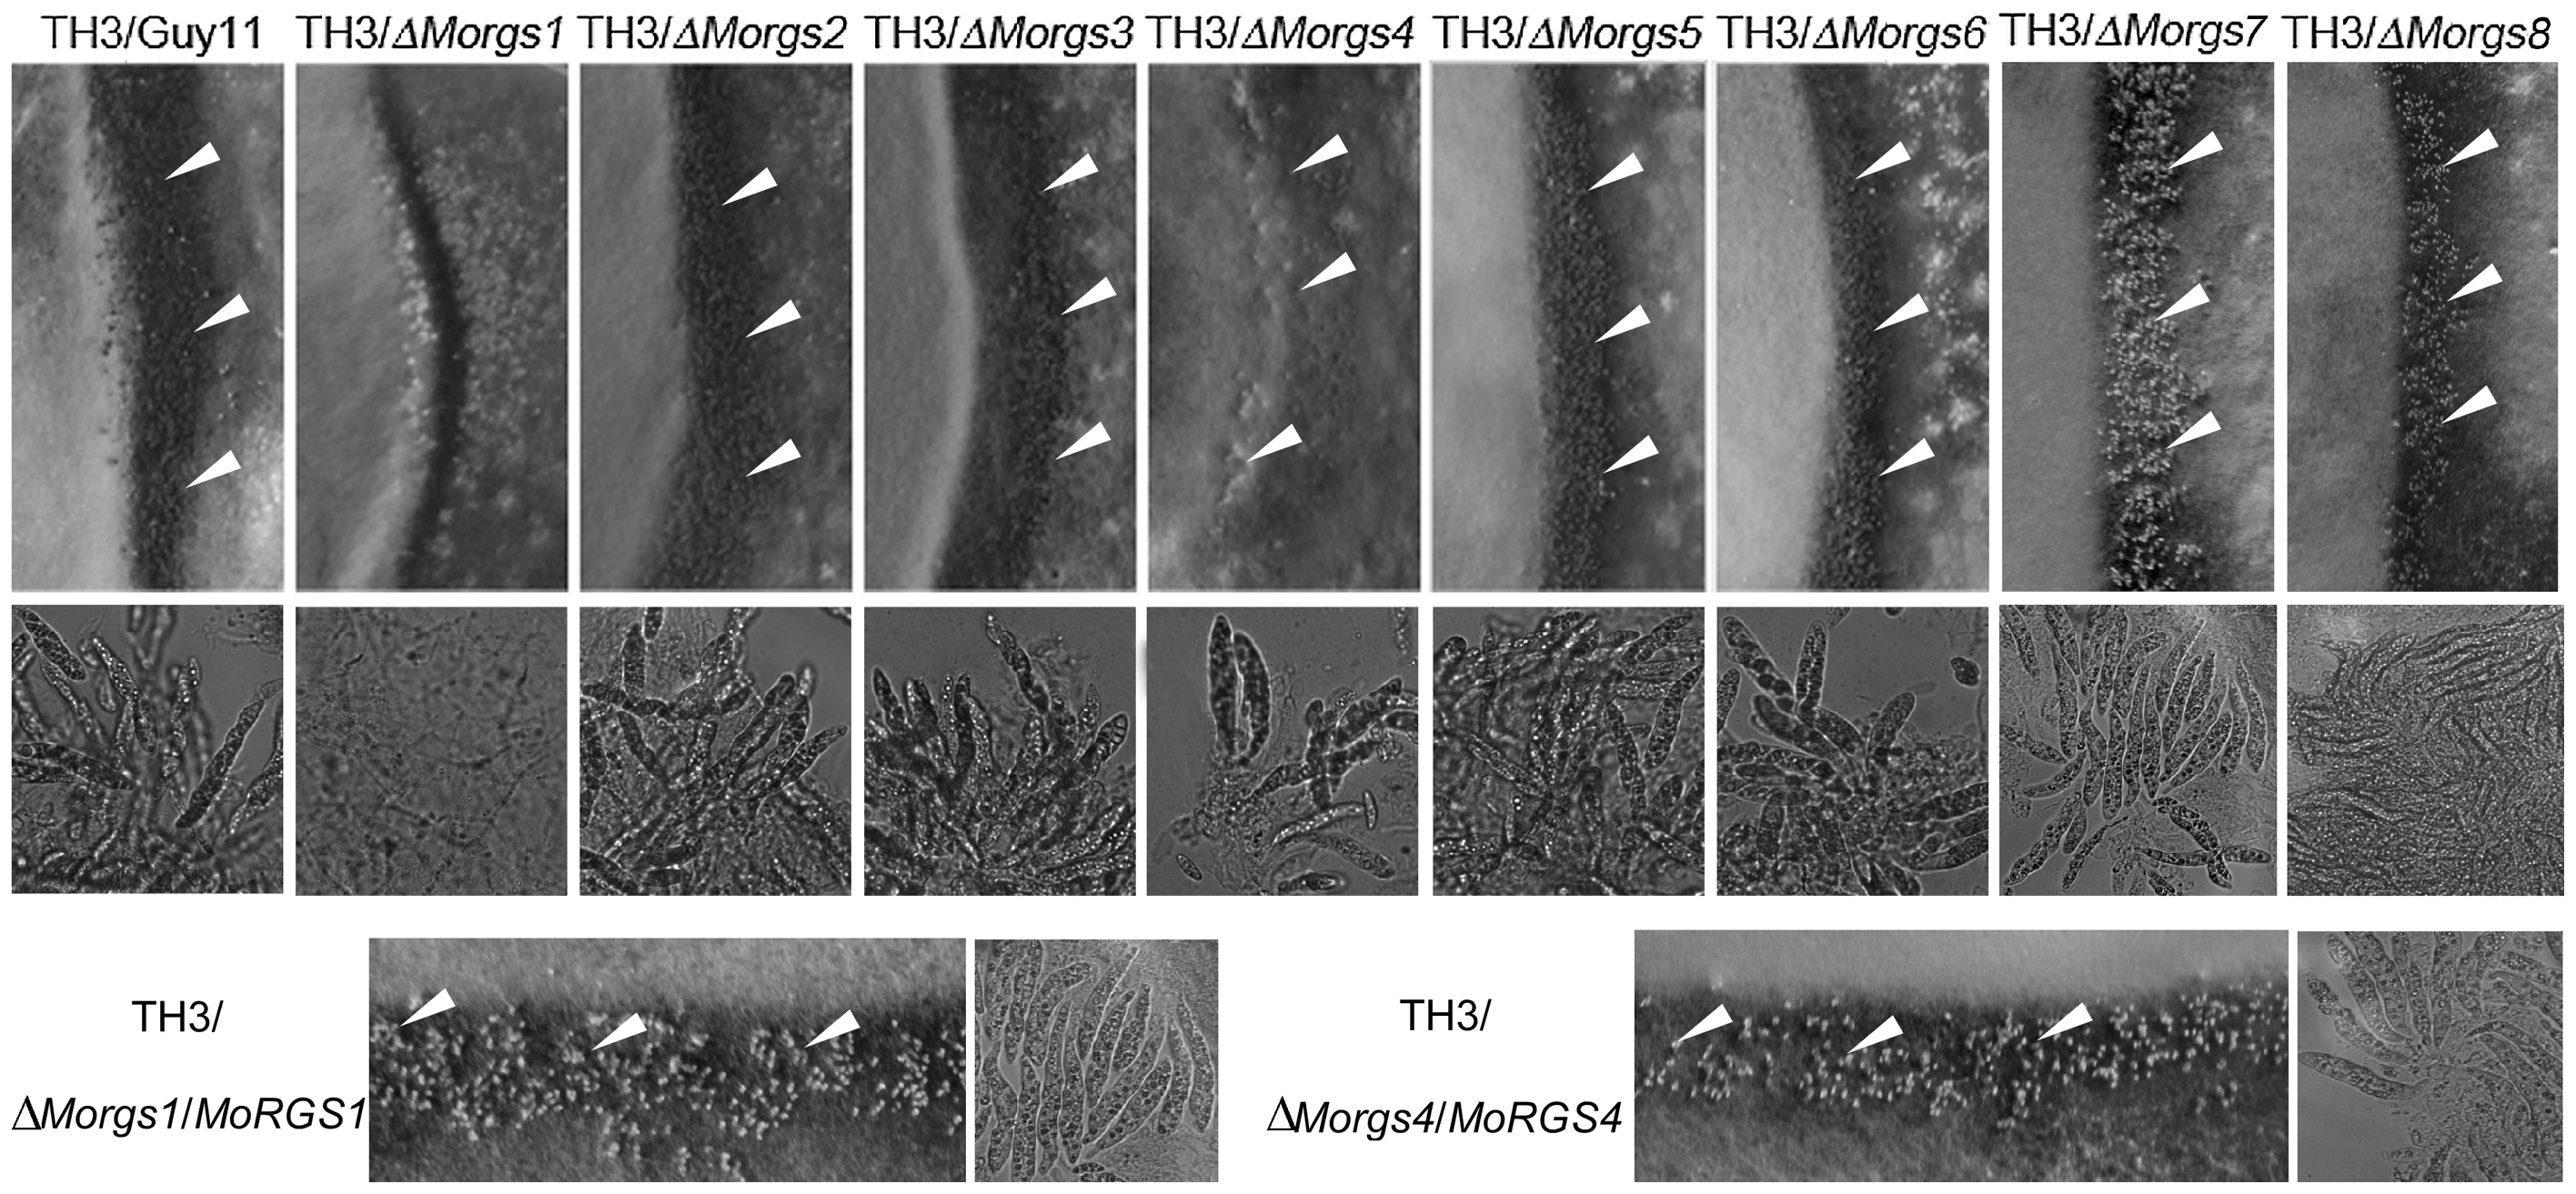 MoRgs1 and MoRgs4 are involved in sexual reproduction in <i>M. oryzae</i>.